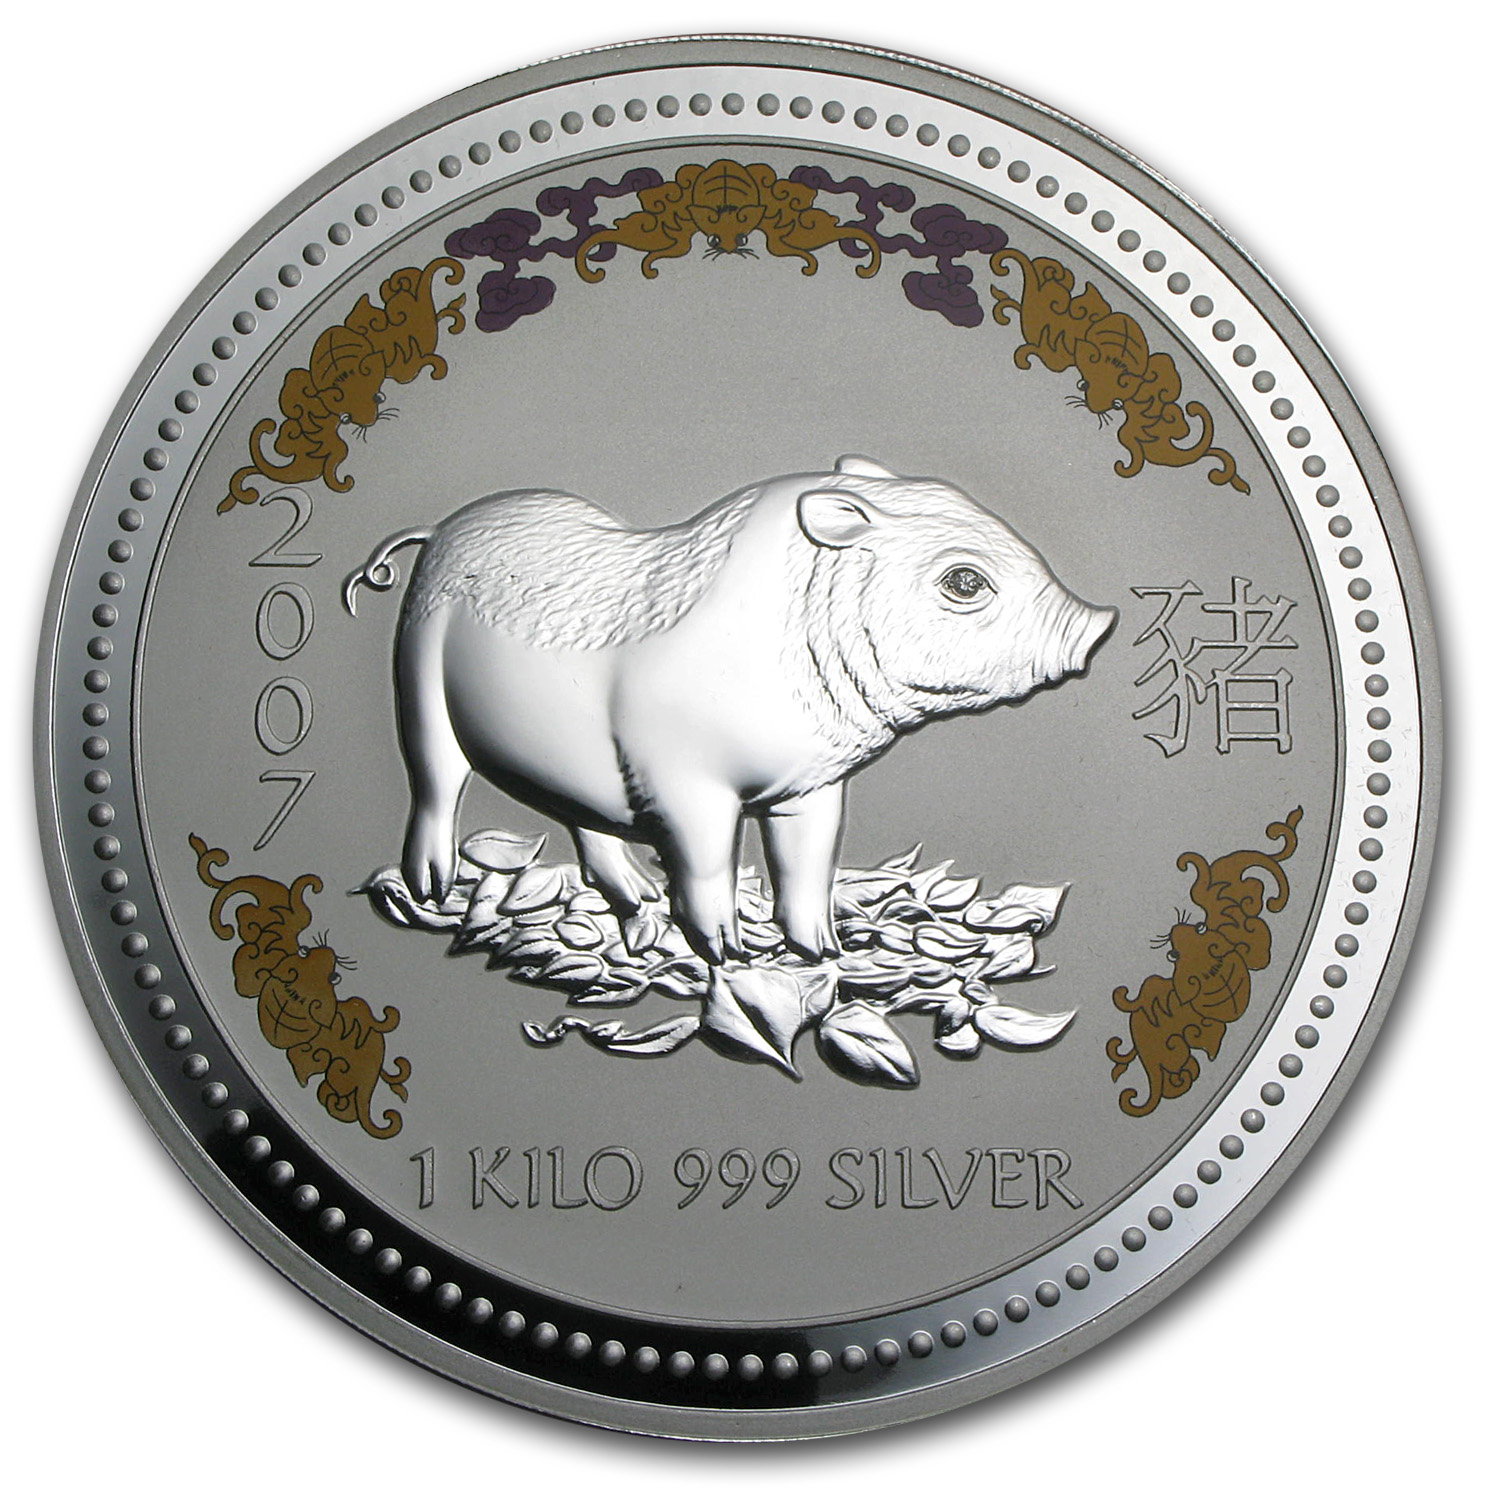 2007 1 kilo Silver Year of the Pig (SI)(Diamond Eye) Capsule Only